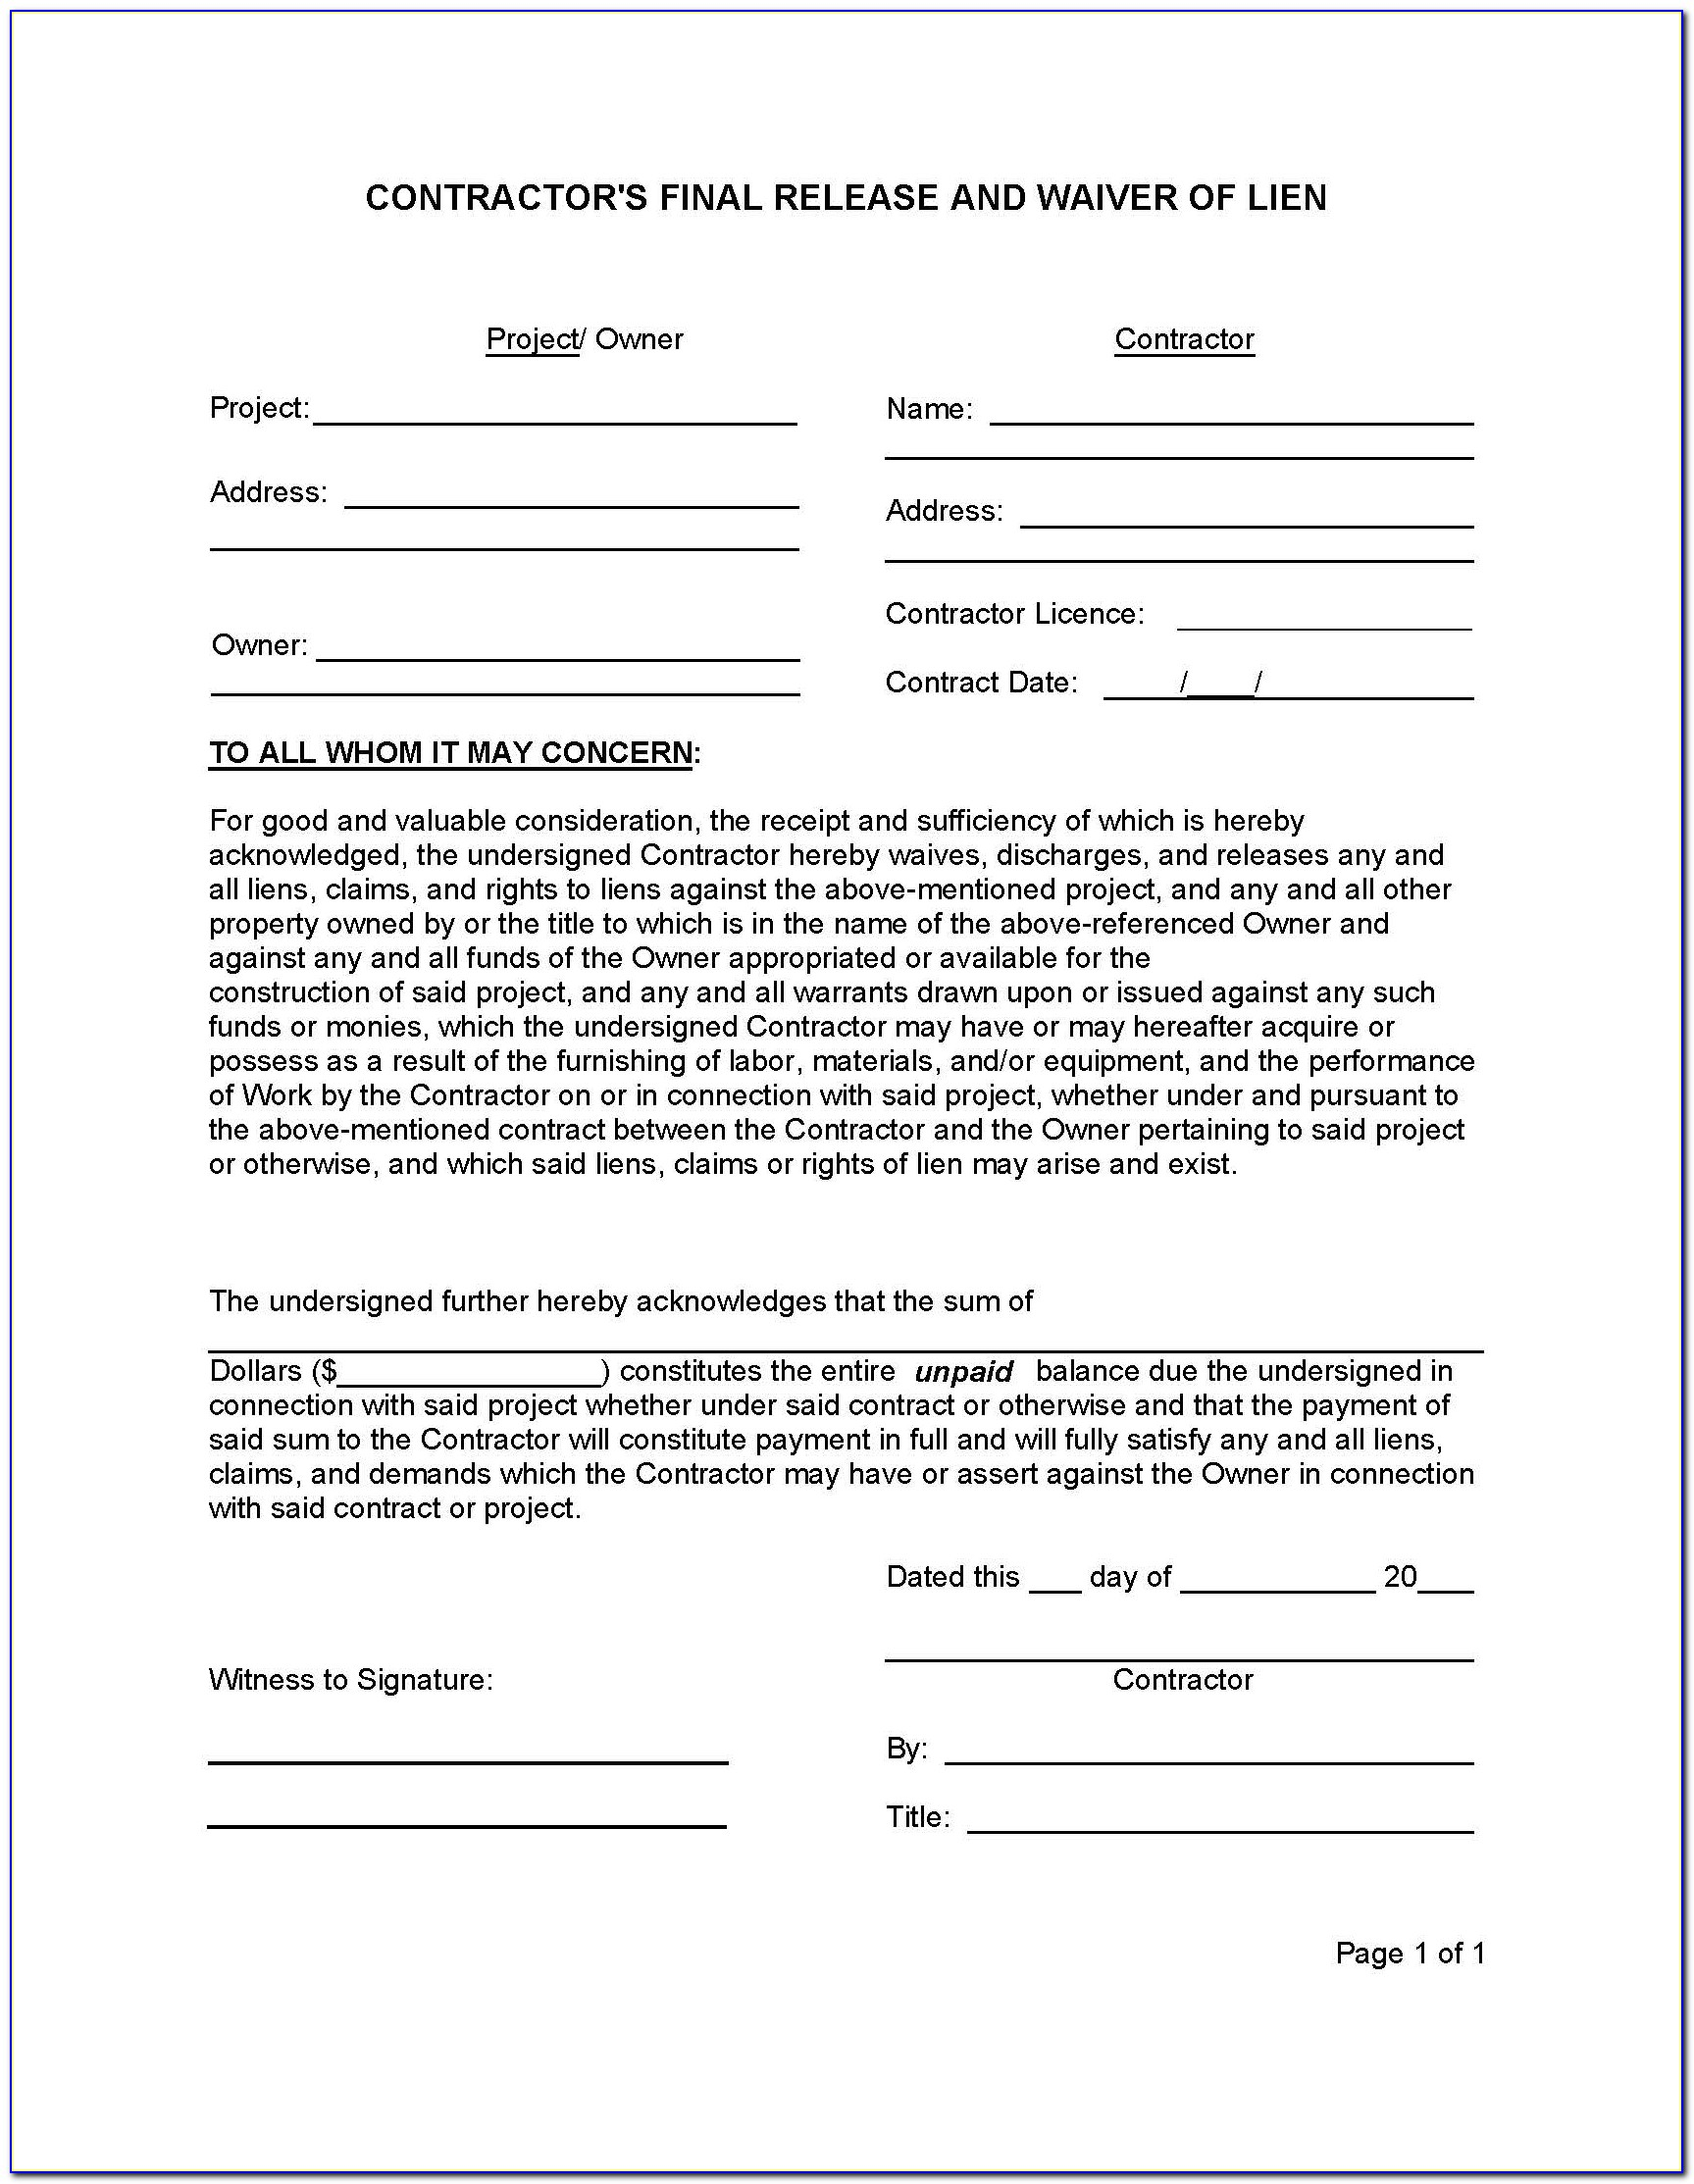 Lien Waiver Form New York